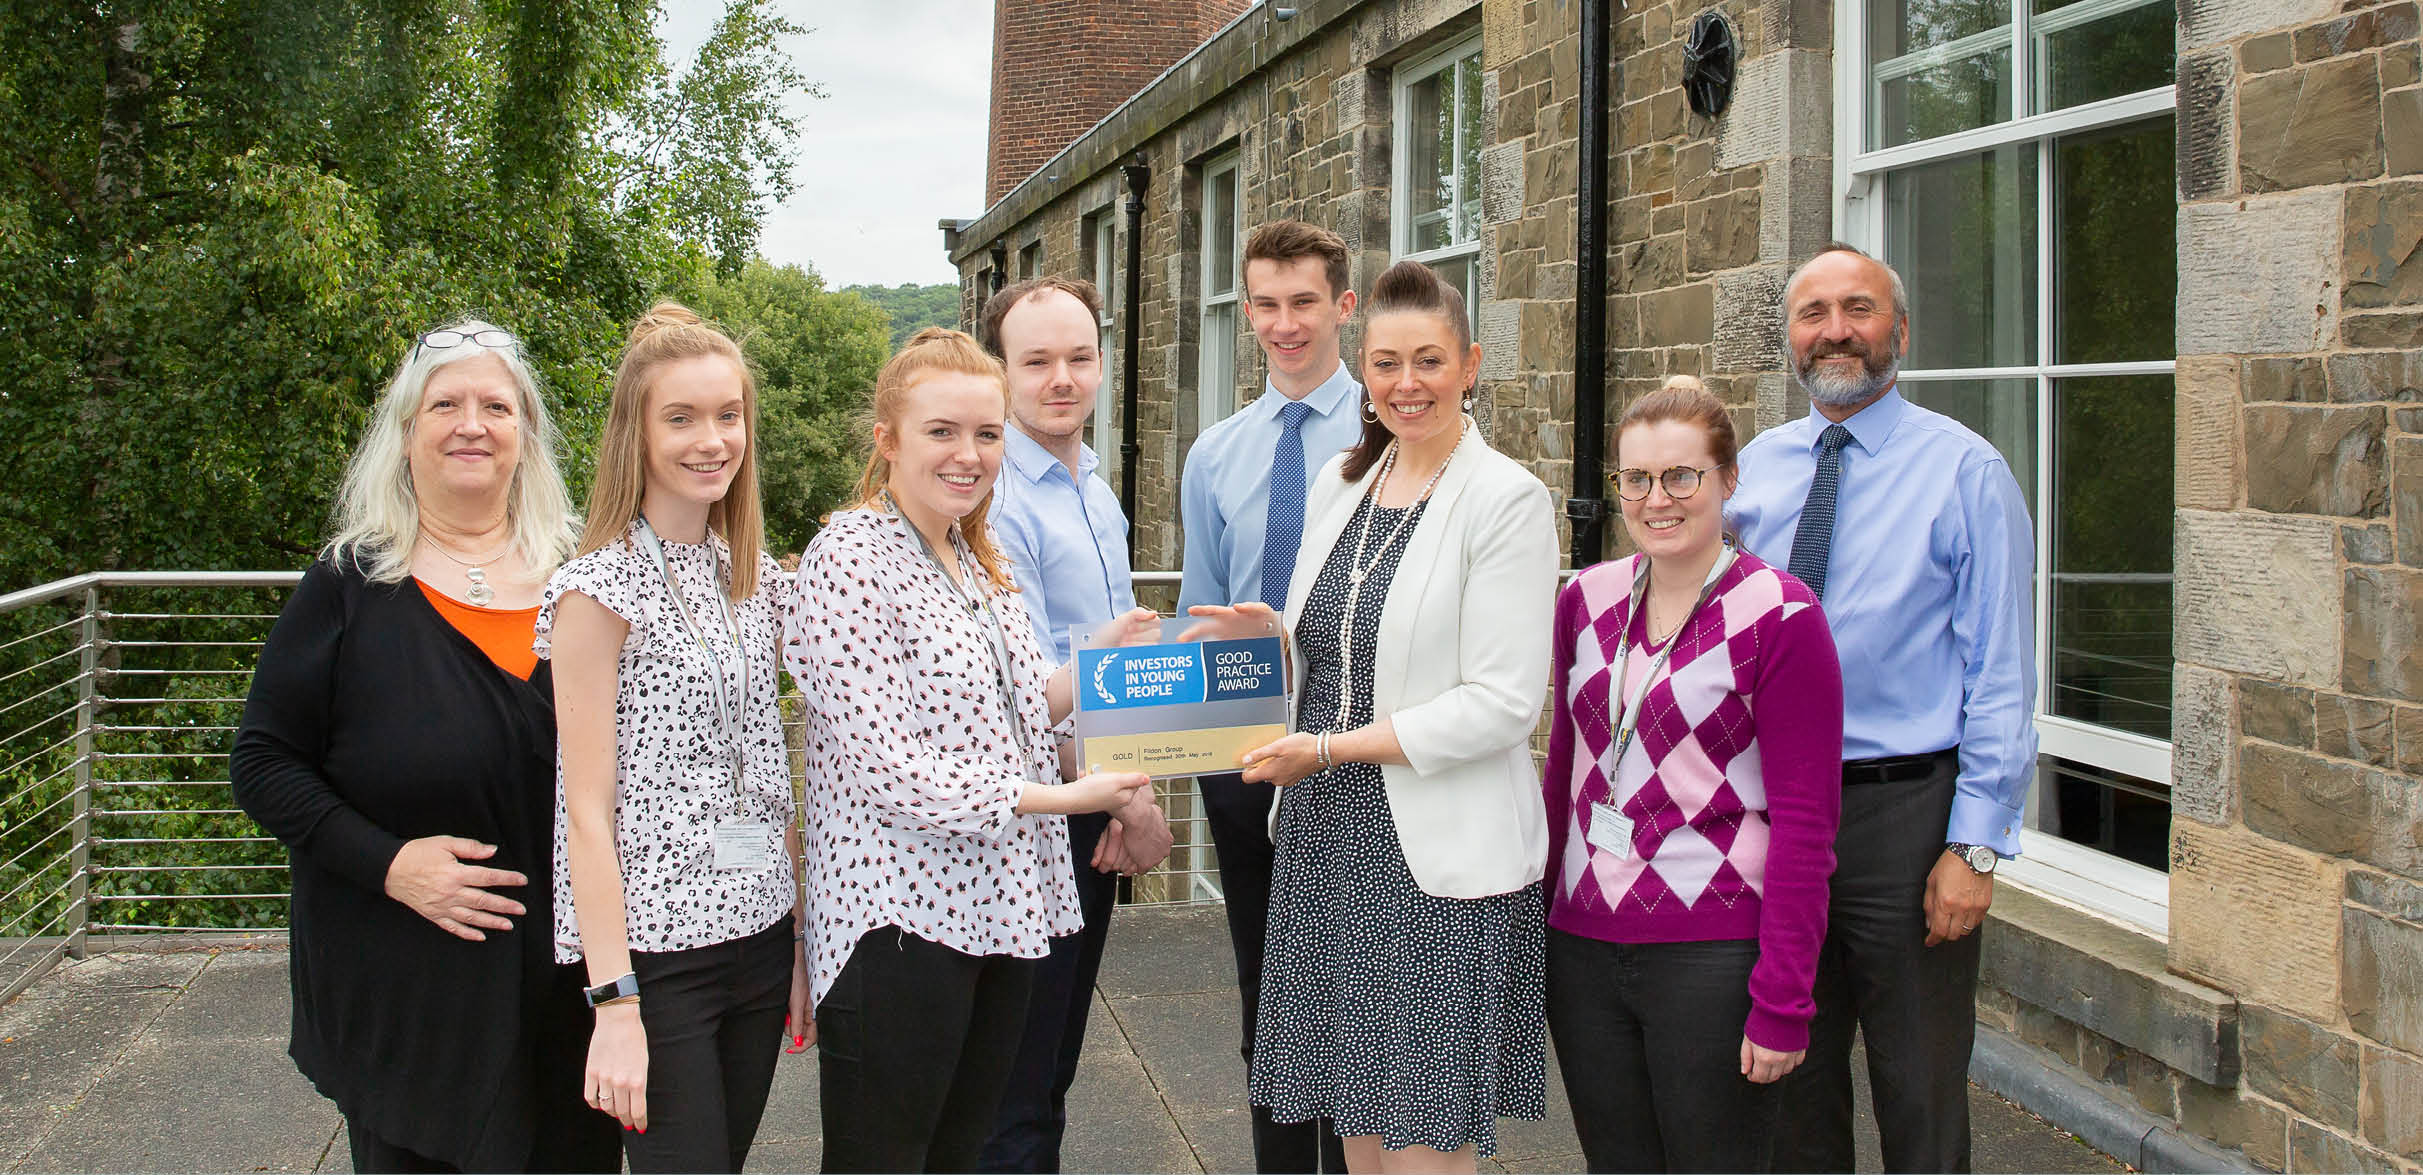 Eildon strikes double 'Gold' with Investors in People accreditations image